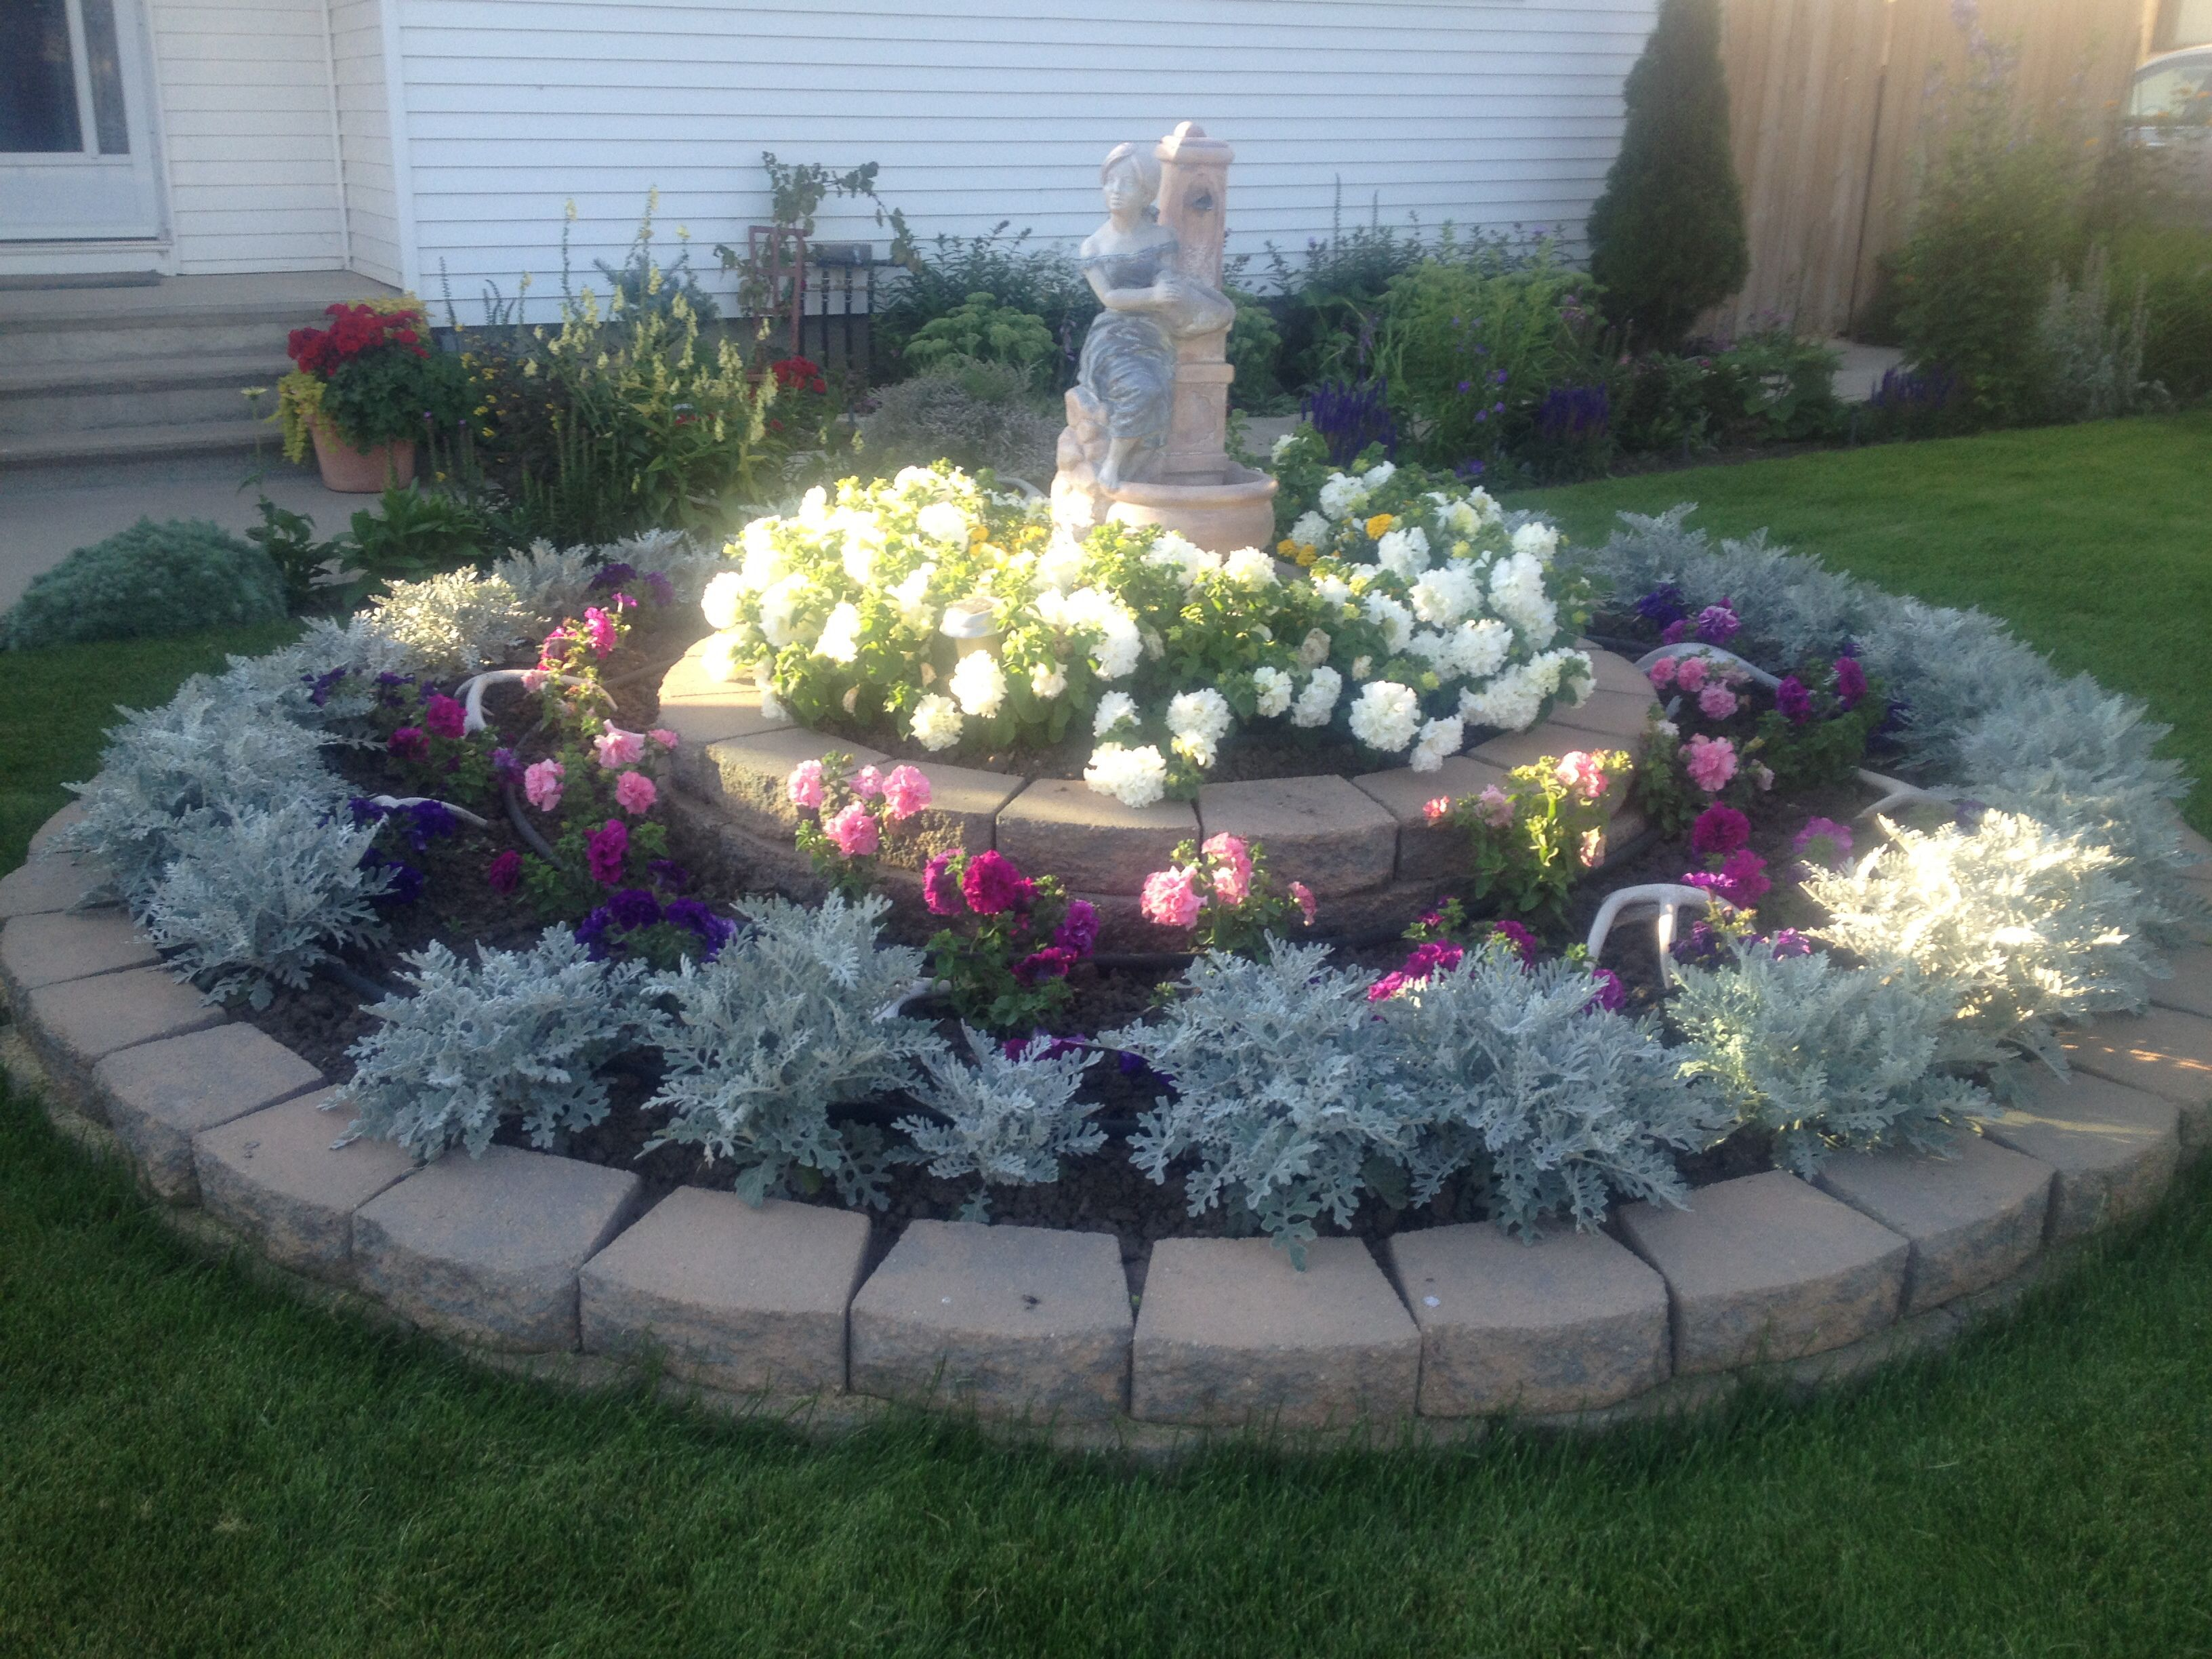 Circle flower garden in front of my house garden decor for Front yard flower garden ideas